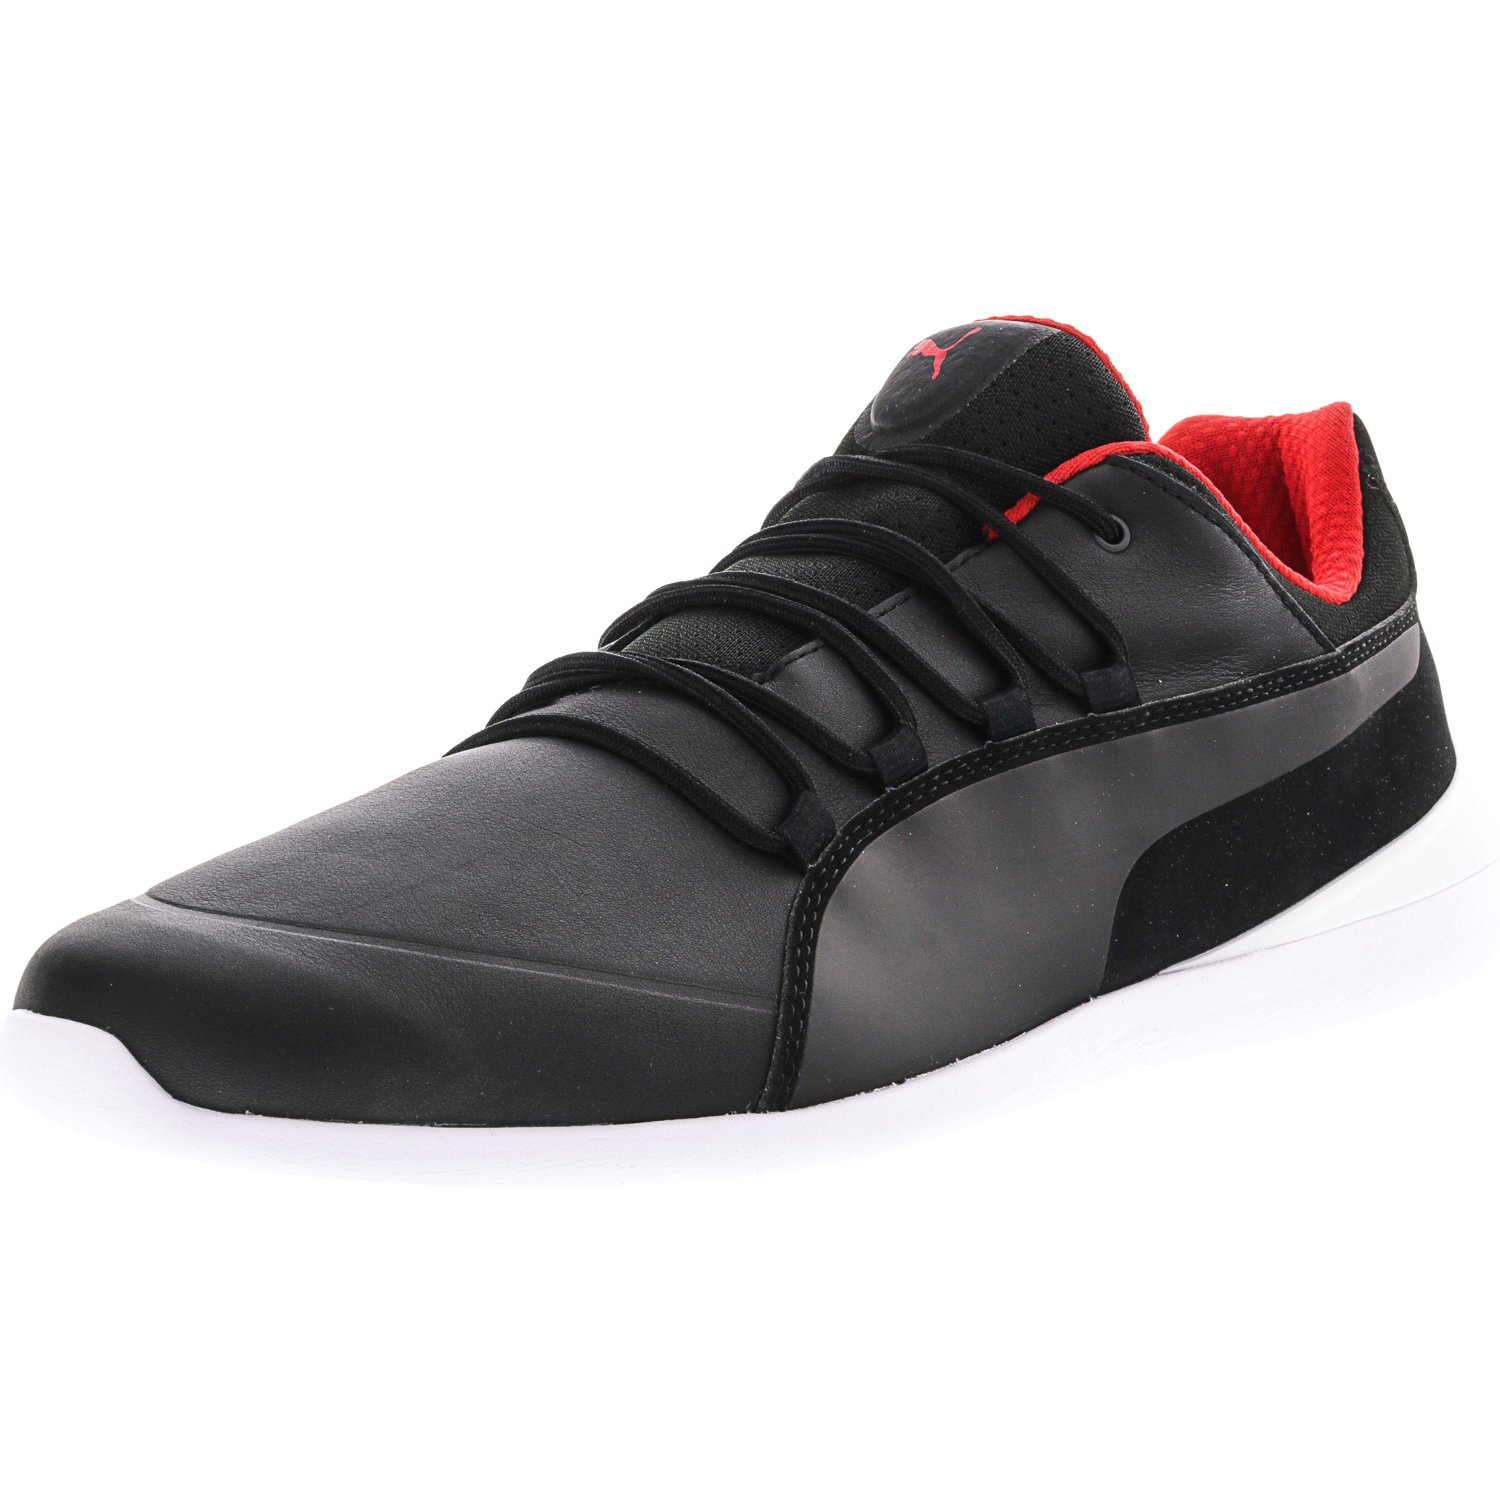 ... closeout puma mens ferrari evo cat black white ankle high fashion  sneaker 11.5m 7287b bcfb8 3ad68bb89